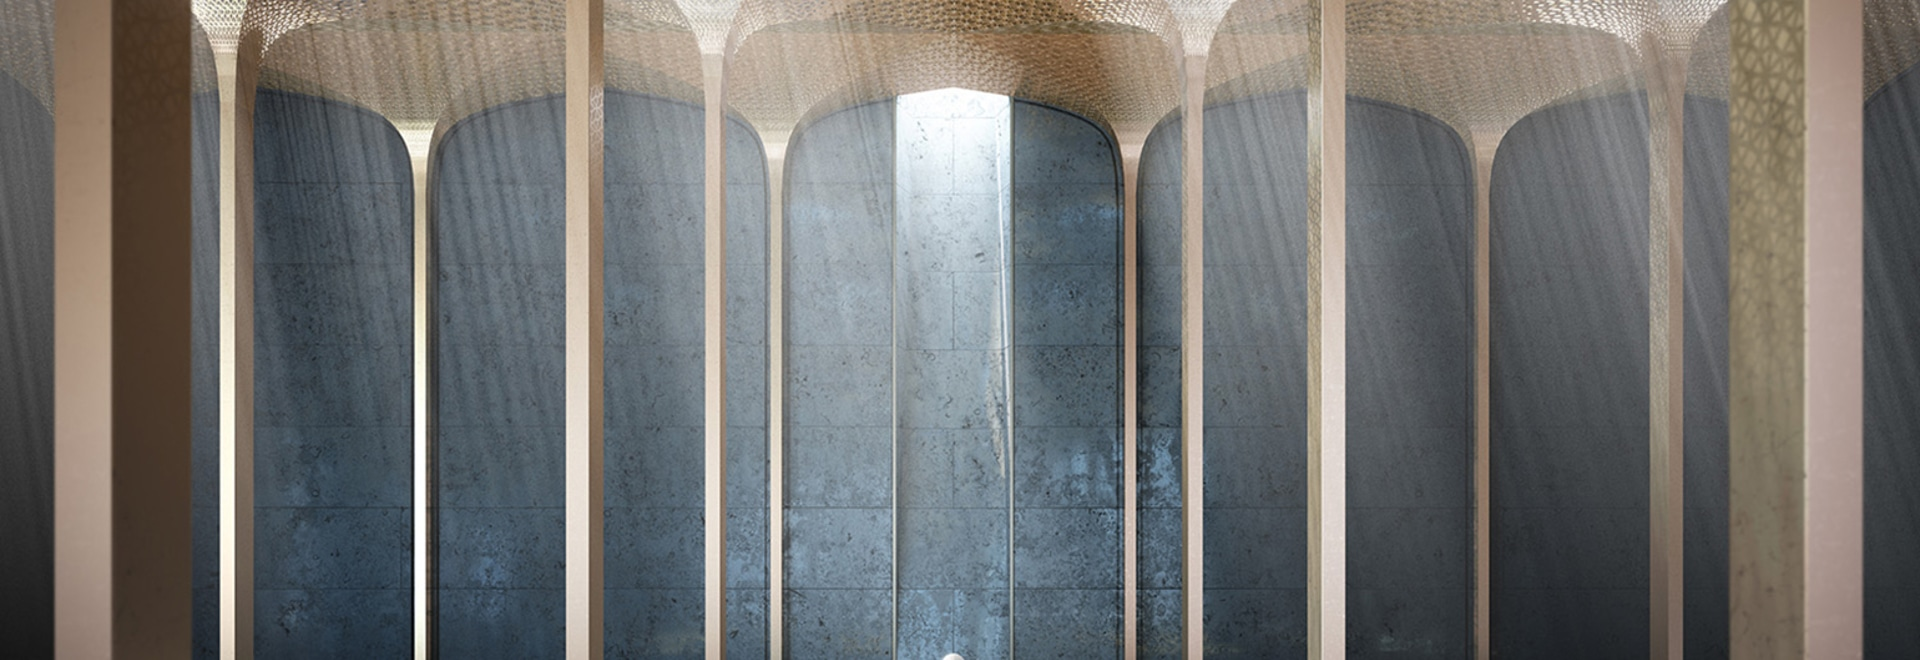 Old and new: AL_A combine tradition and modernity for Abu Dhabi ...